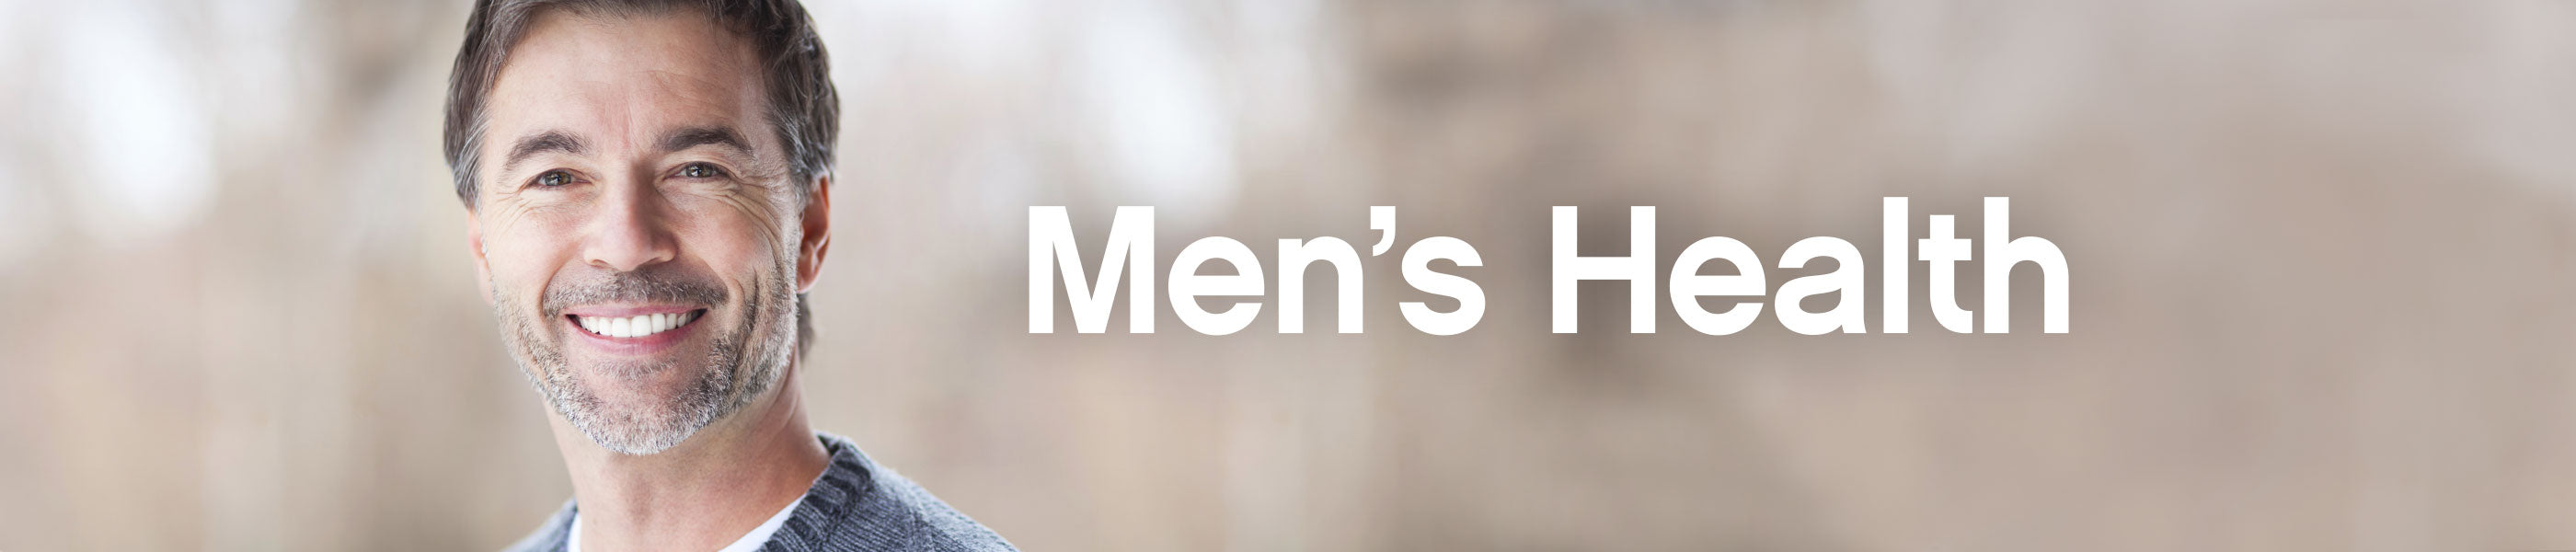 Men's Health header image